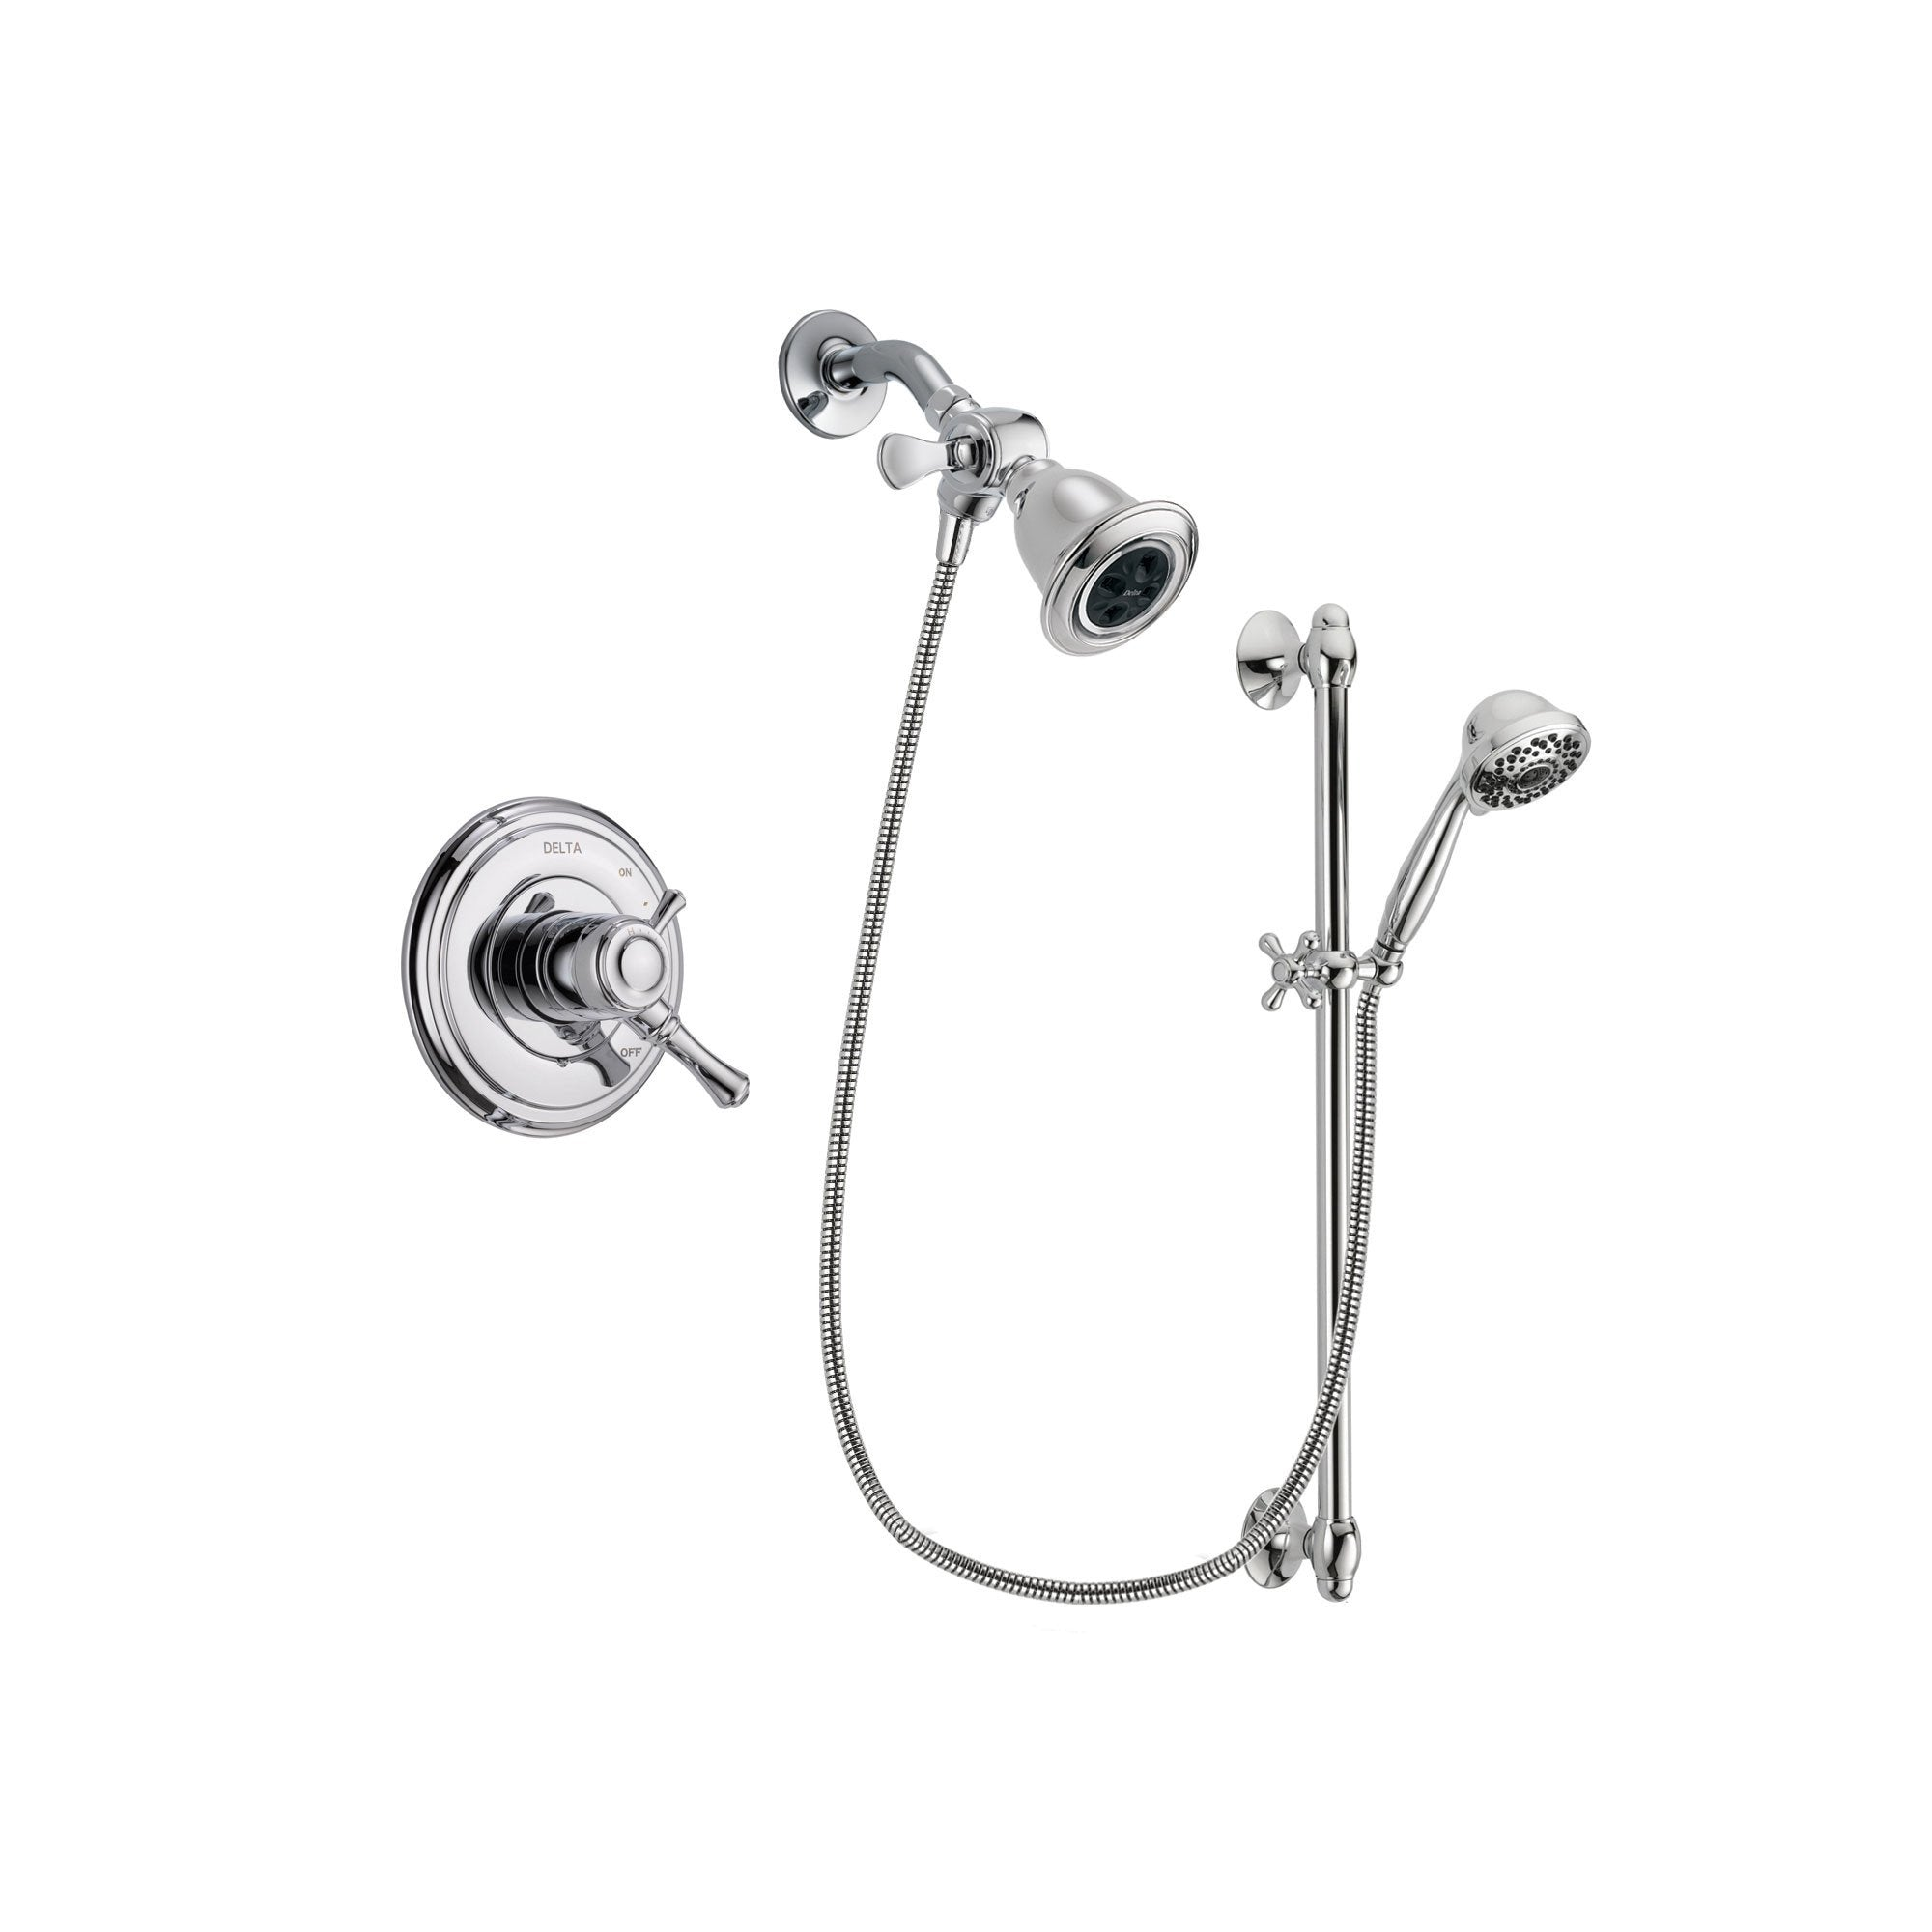 Delta Cassidy Chrome Shower Faucet System w/ Showerhead and Hand Shower DSP0628V